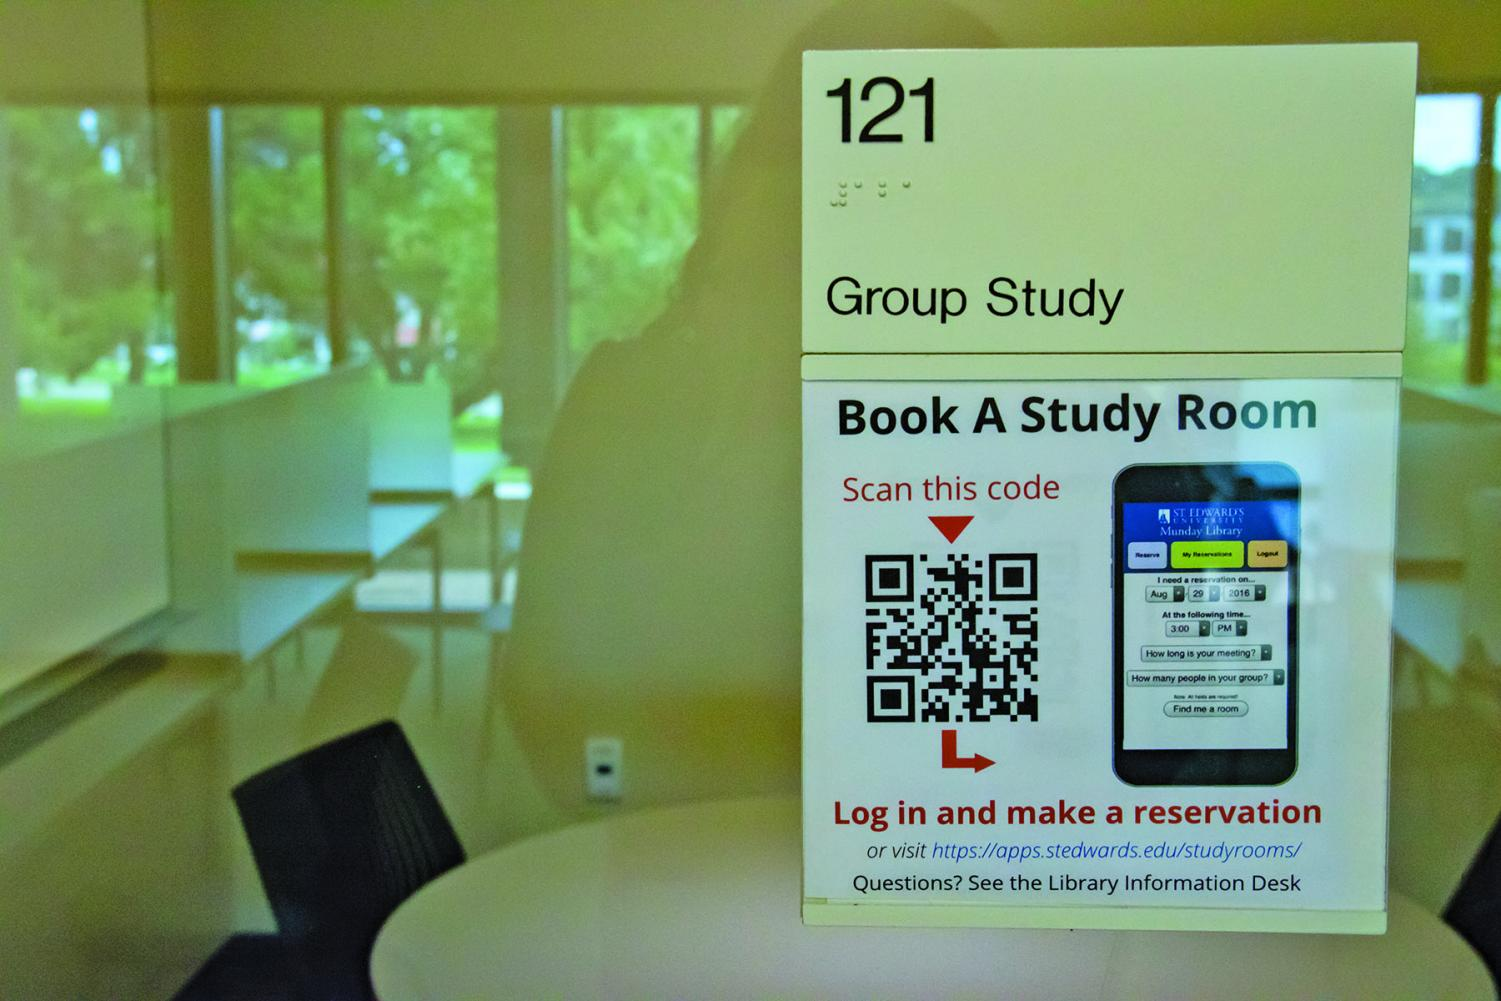 Study rooms should be an easy process to book.